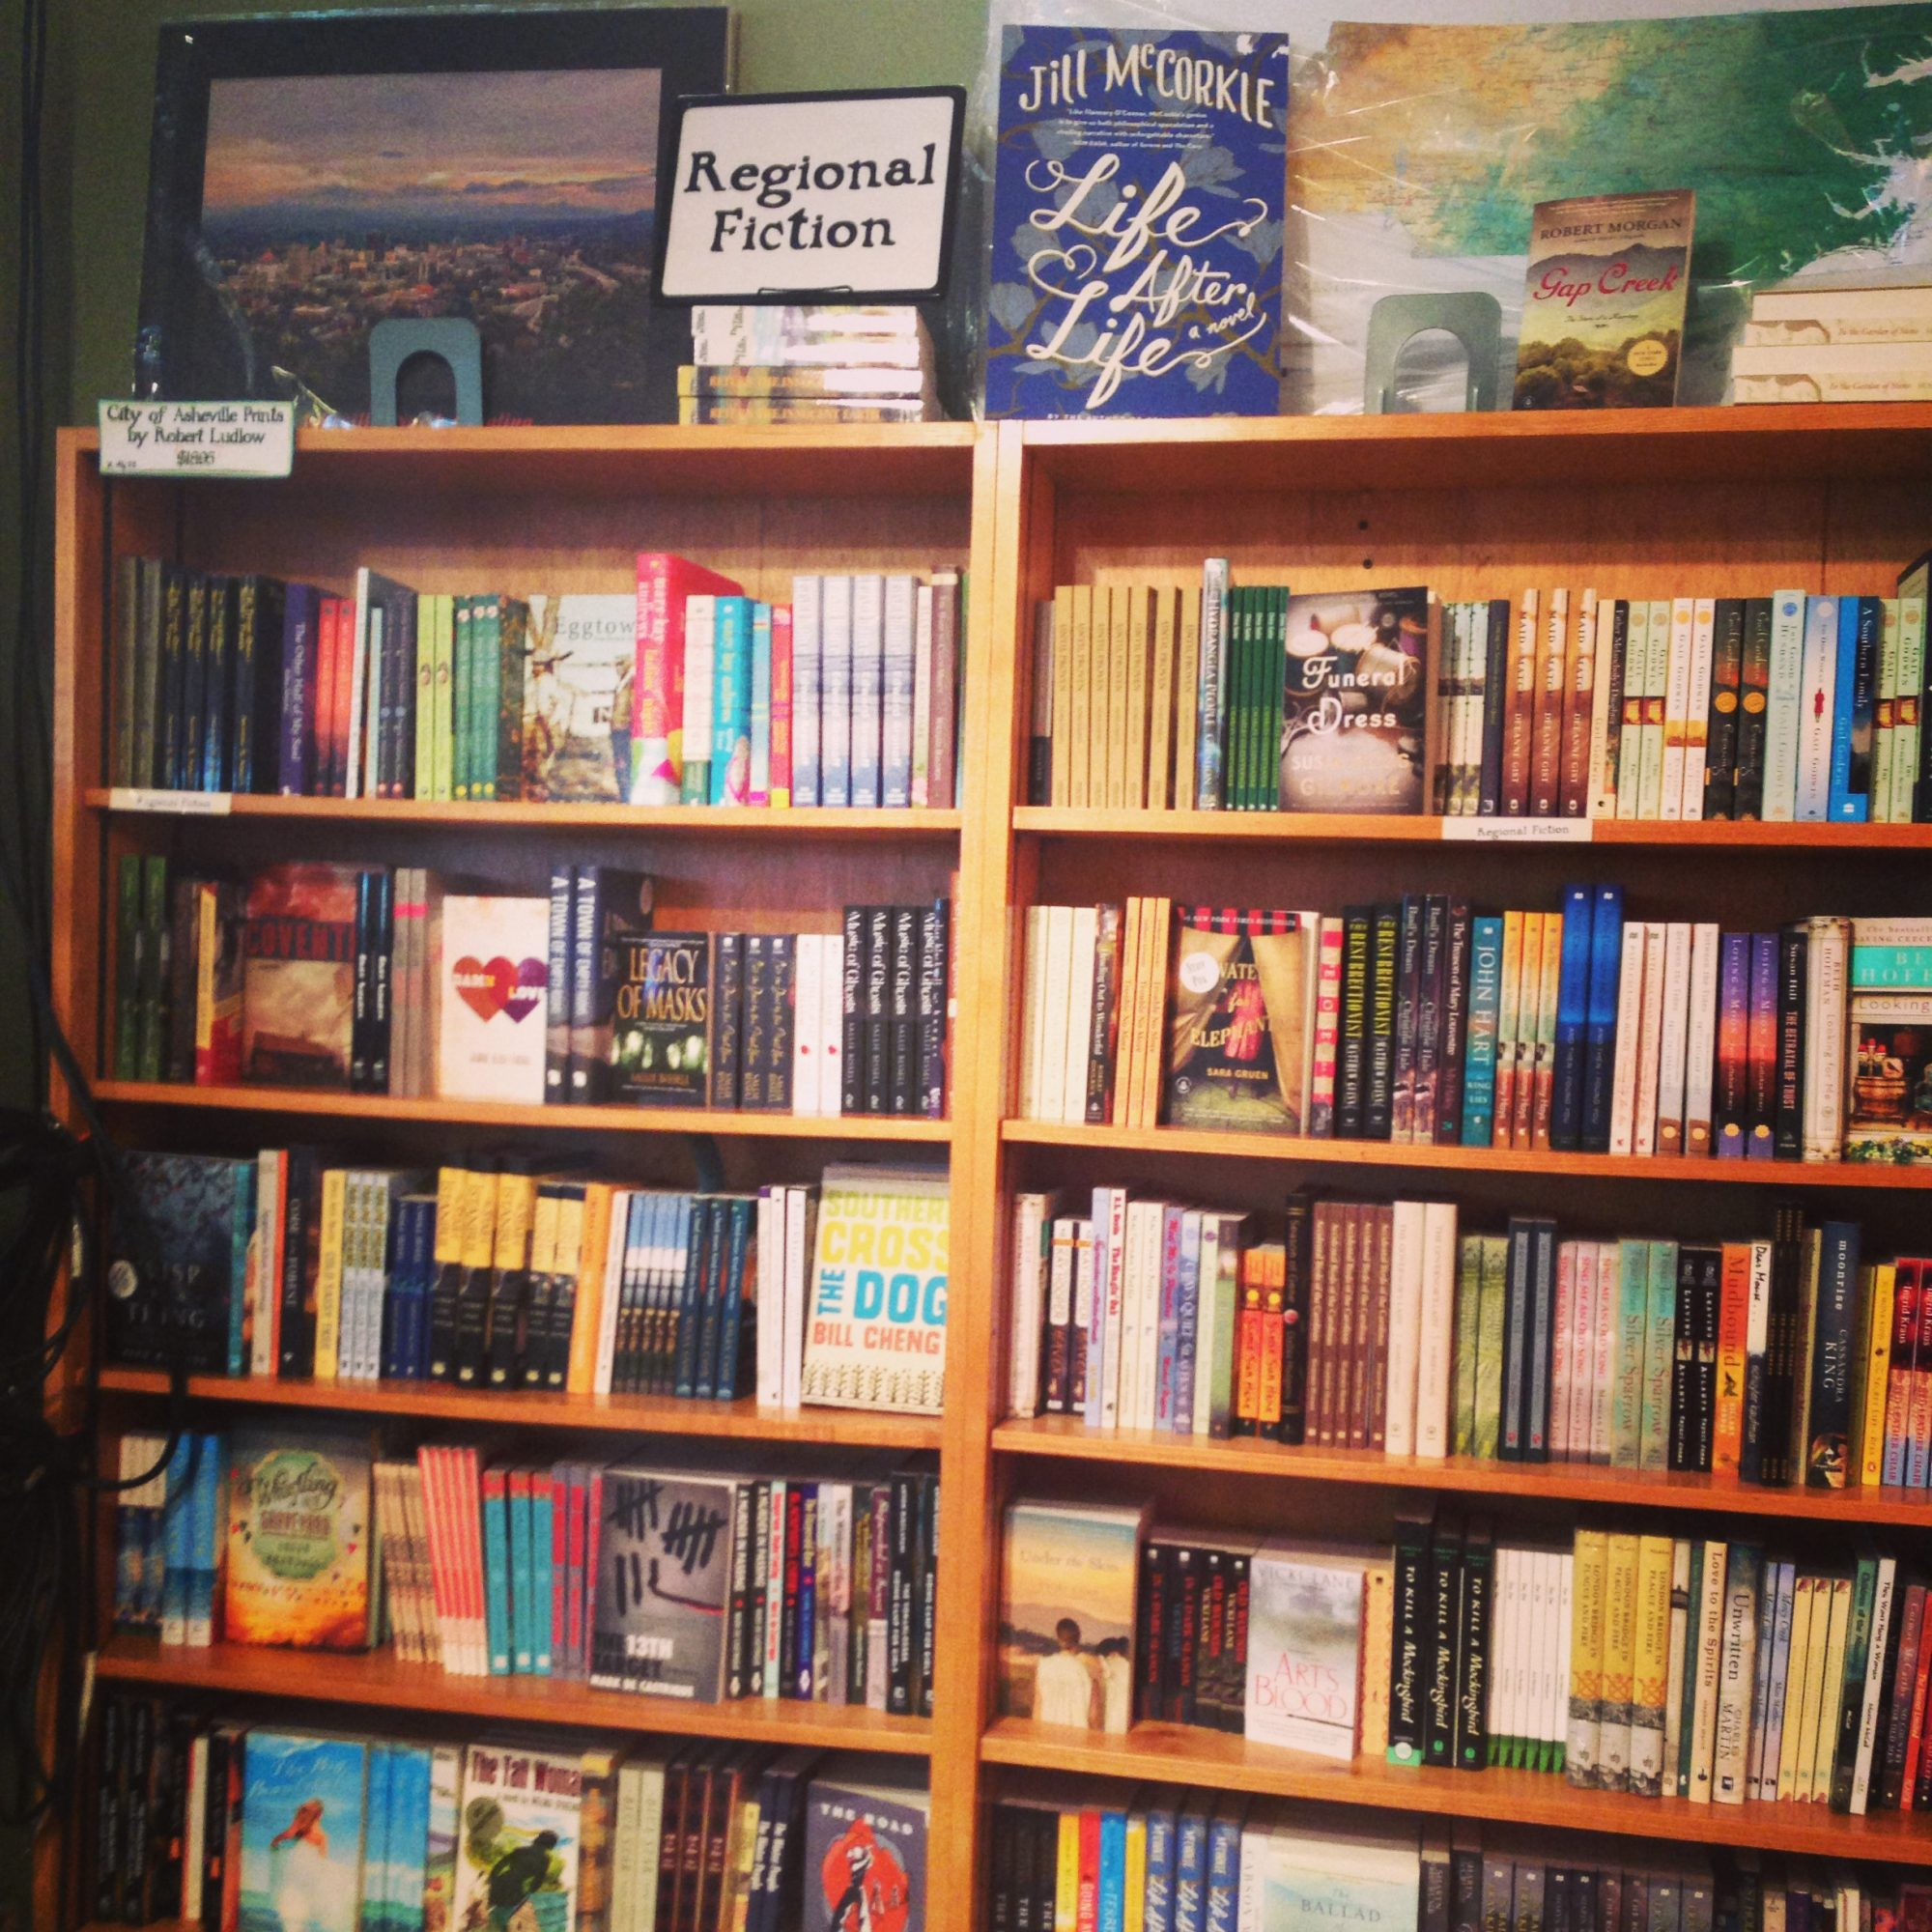 4. Malaprop's Bookstore/Cafe (Asheville, North Carolina)